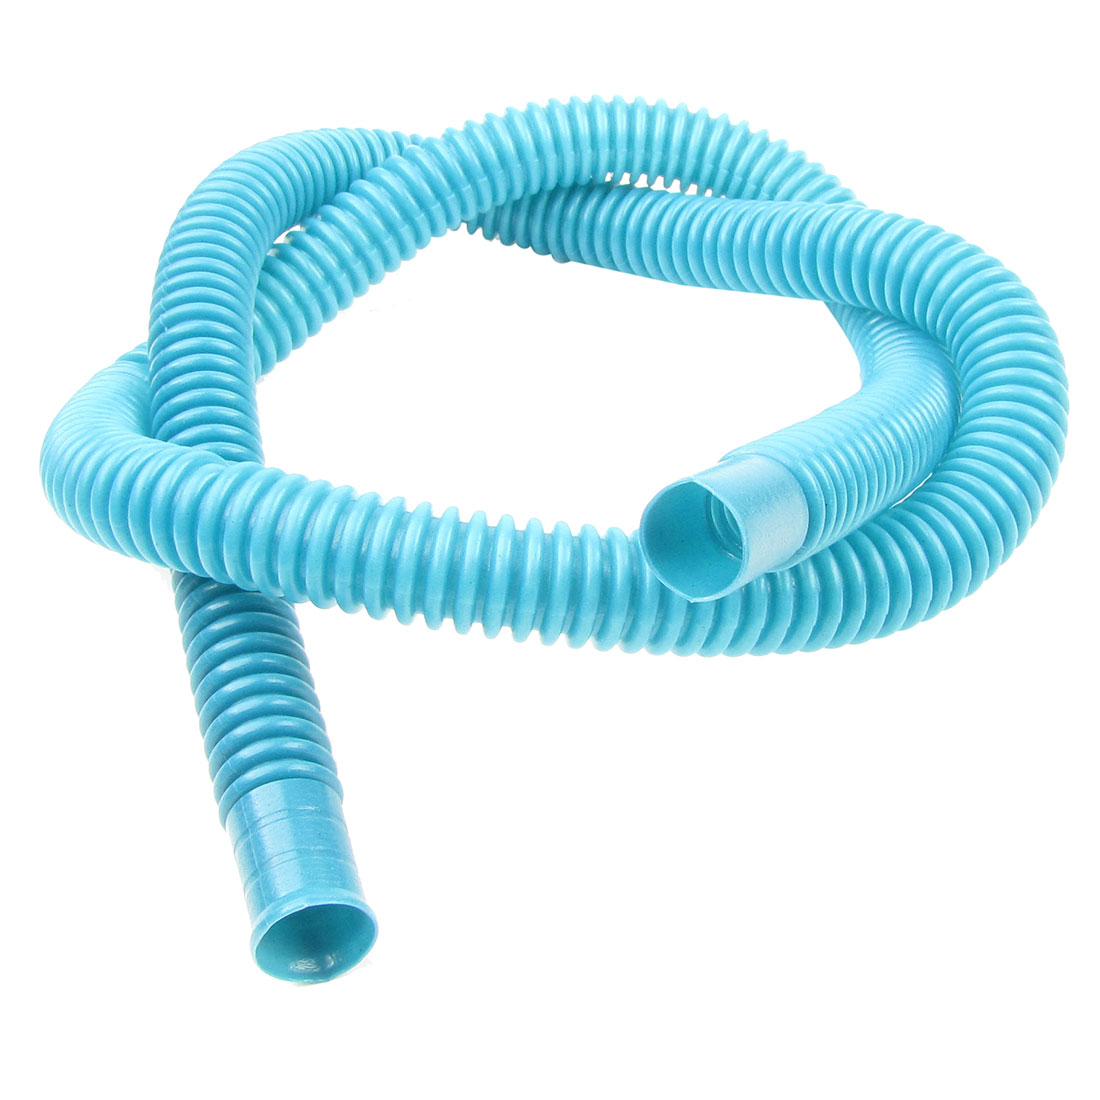 Cyan Plastic 3.4Ft Washing Machine Water Waste Drain Hose Pipe